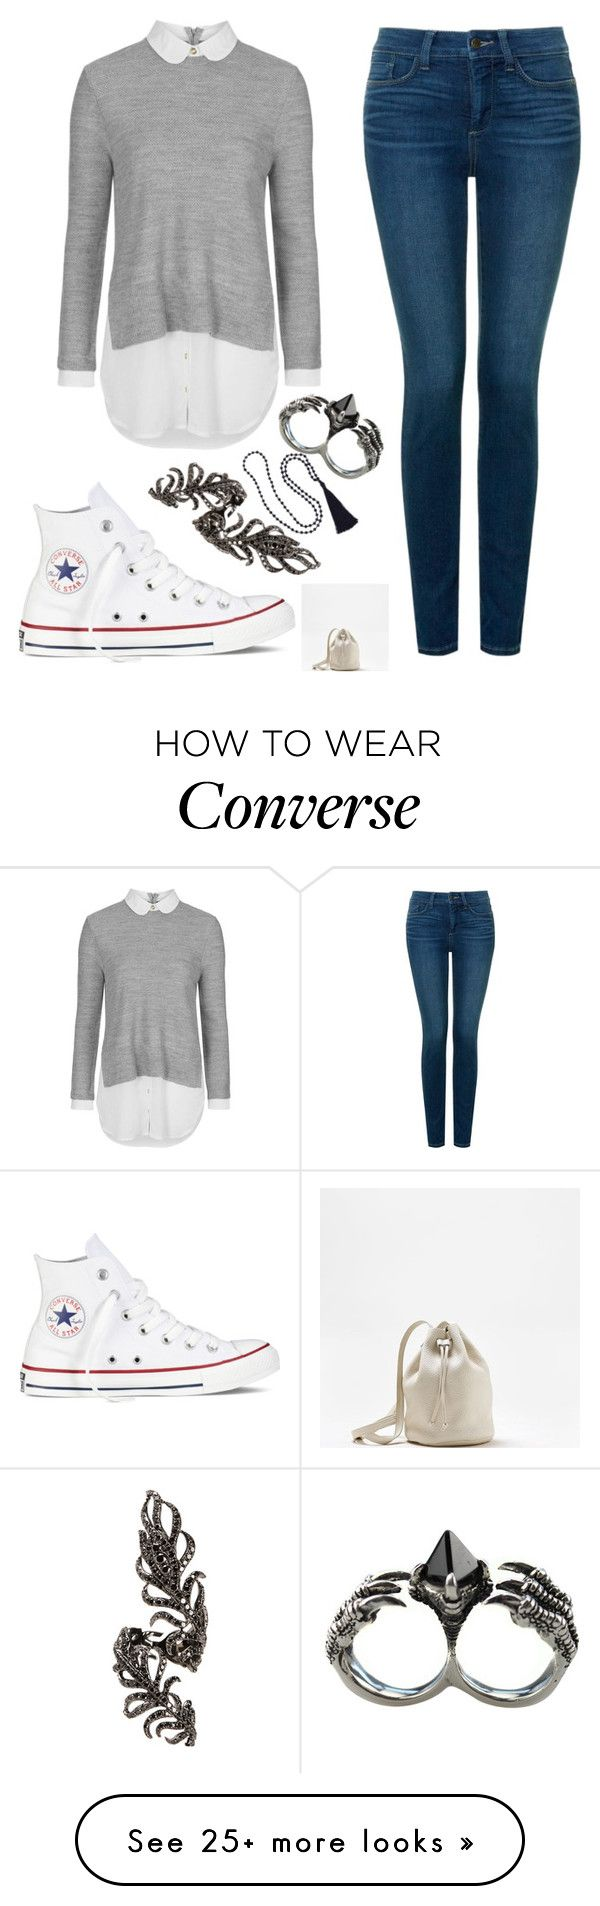 """""""Untitled #498"""" by tokyoghoul1 on Polyvore featuring NYDJ, Topshop, Converse, Elise Dray, KD2024, American Eagle Outfitters, women's clothing, women's fashion, women and female"""